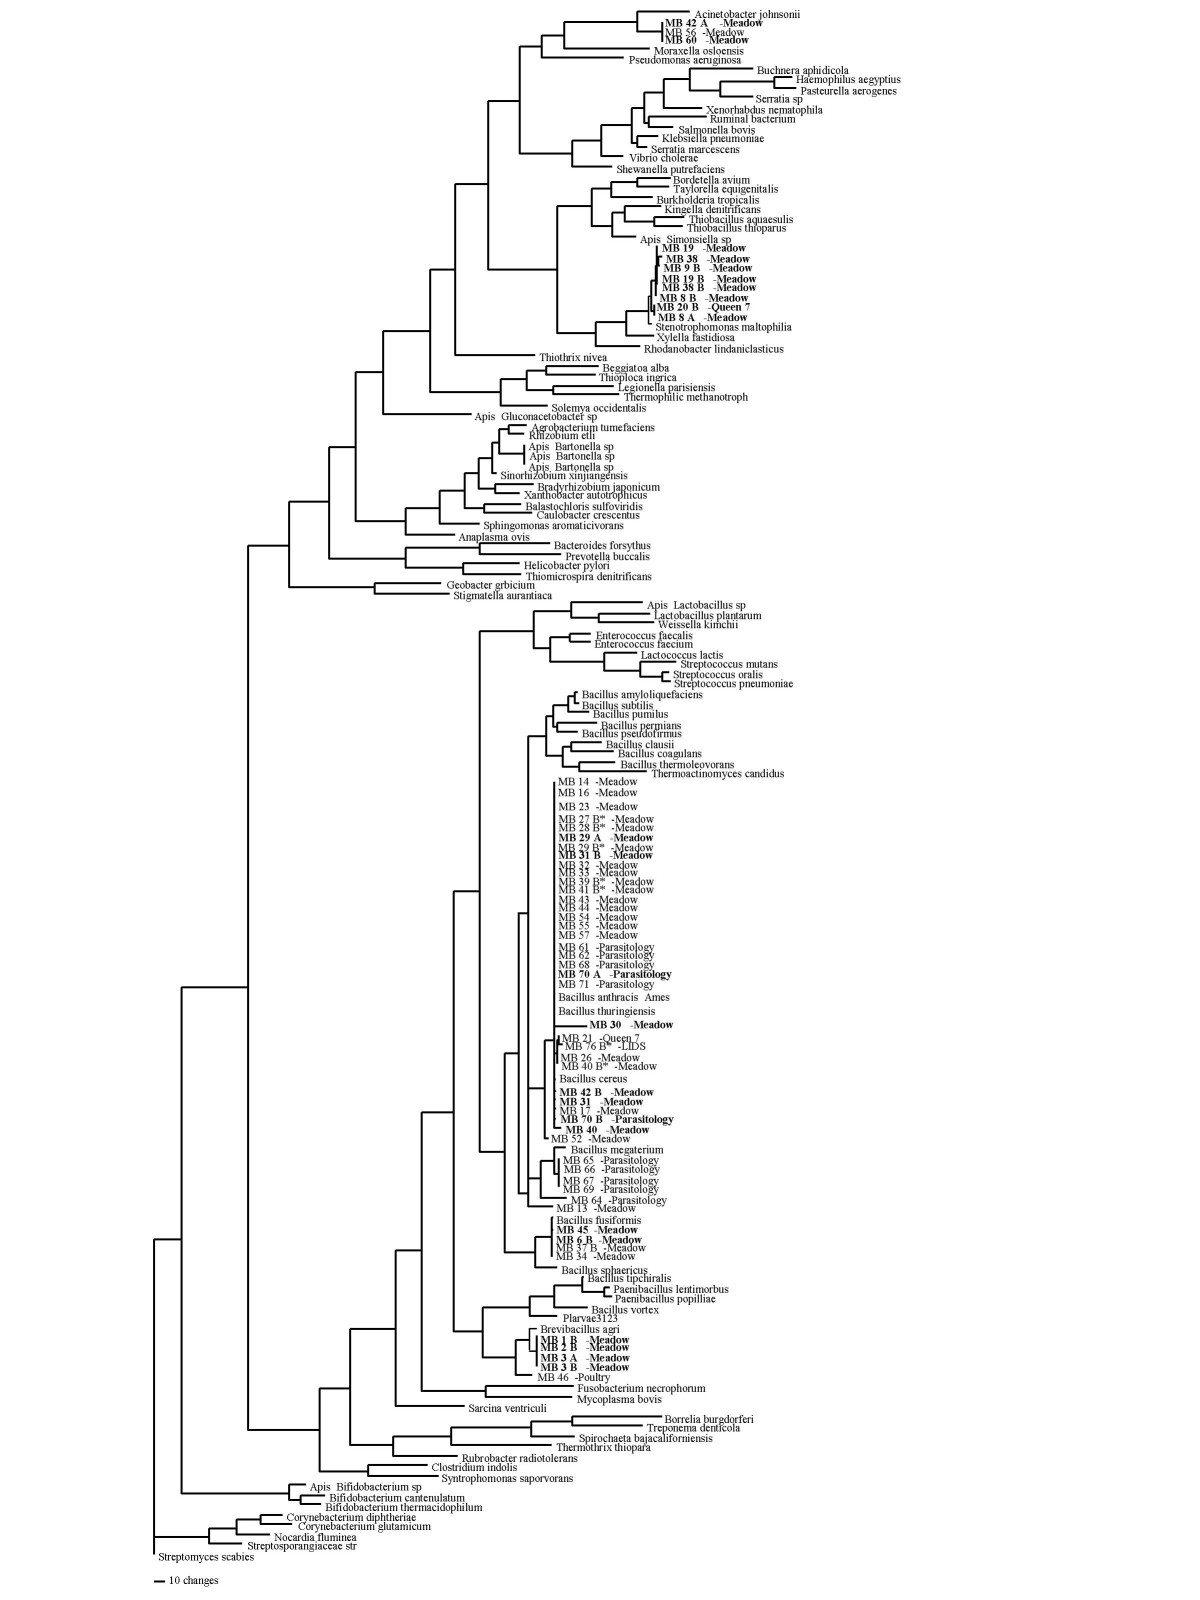 http://static-content.springer.com/image/art%3A10.1186%2F1472-6785-6-4/MediaObjects/12898_2005_Article_57_Fig2_HTML.jpg